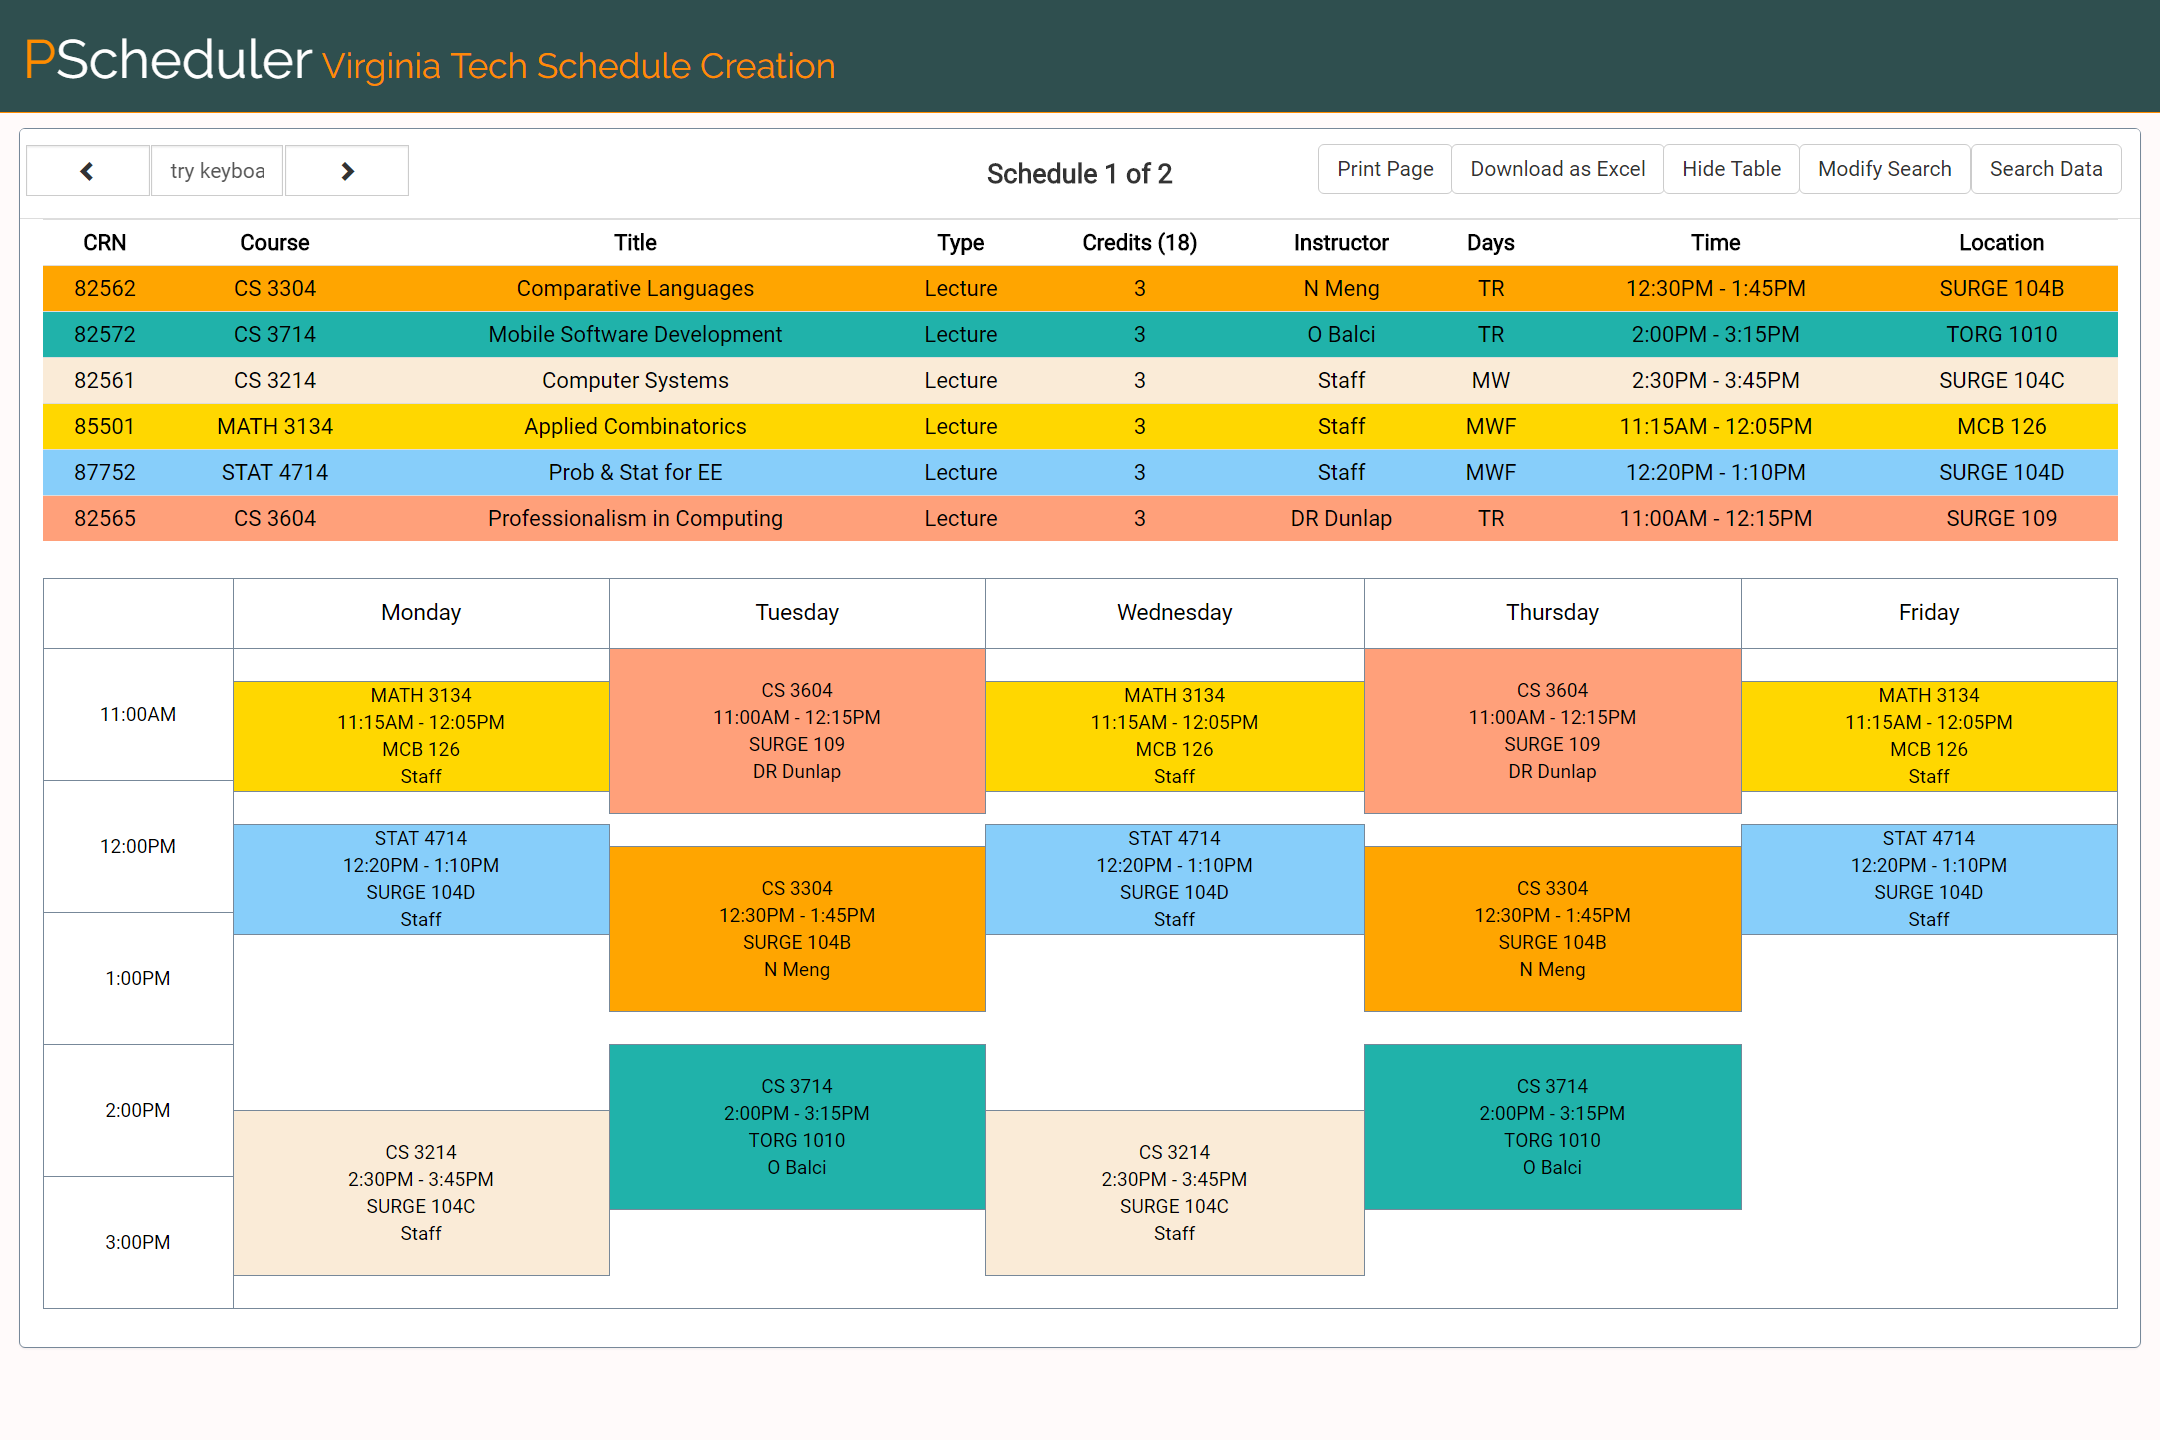 Image of generated schedules